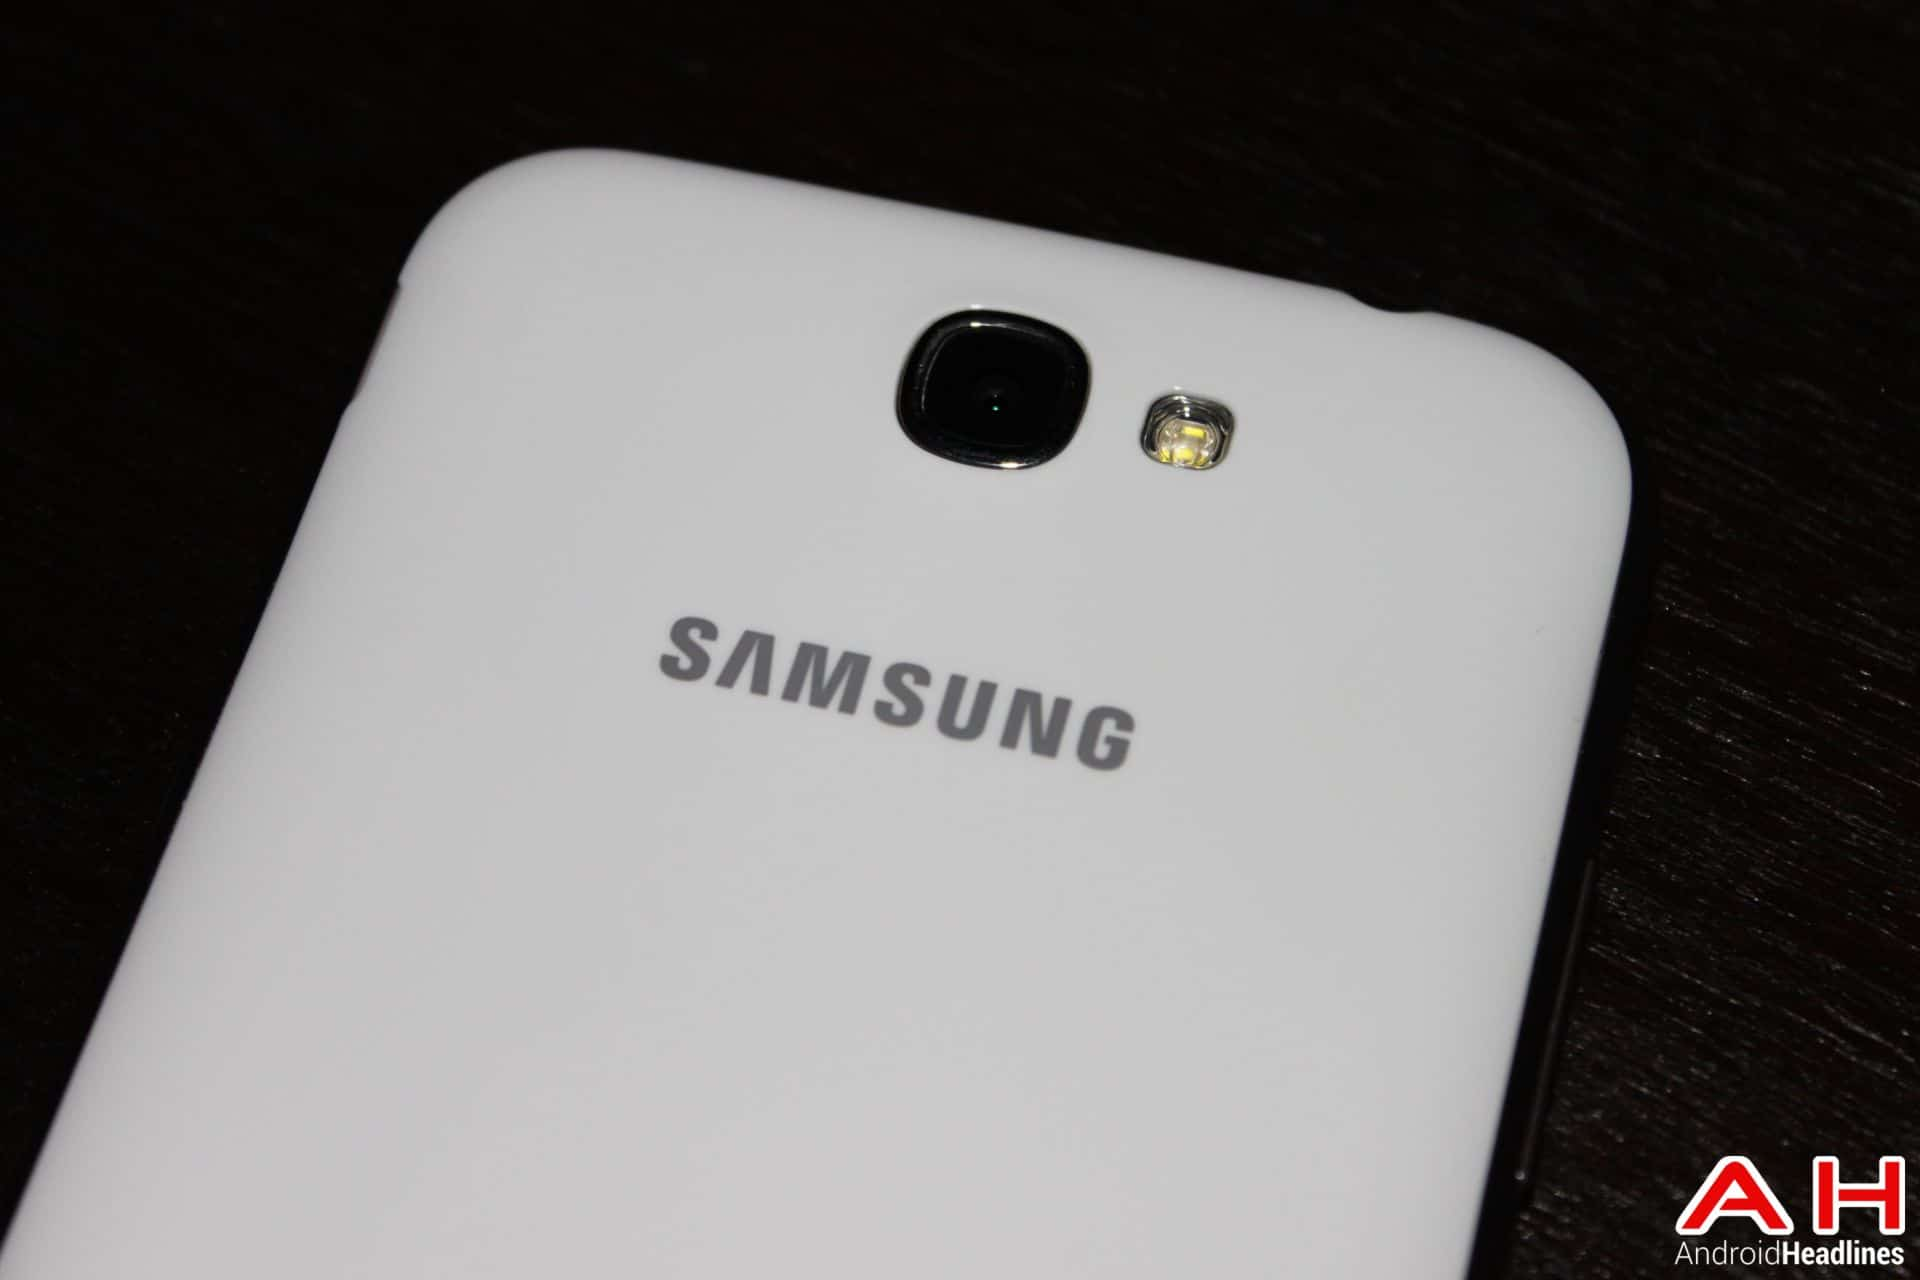 AH Samsung Galaxy Note 2 Logo 2.2